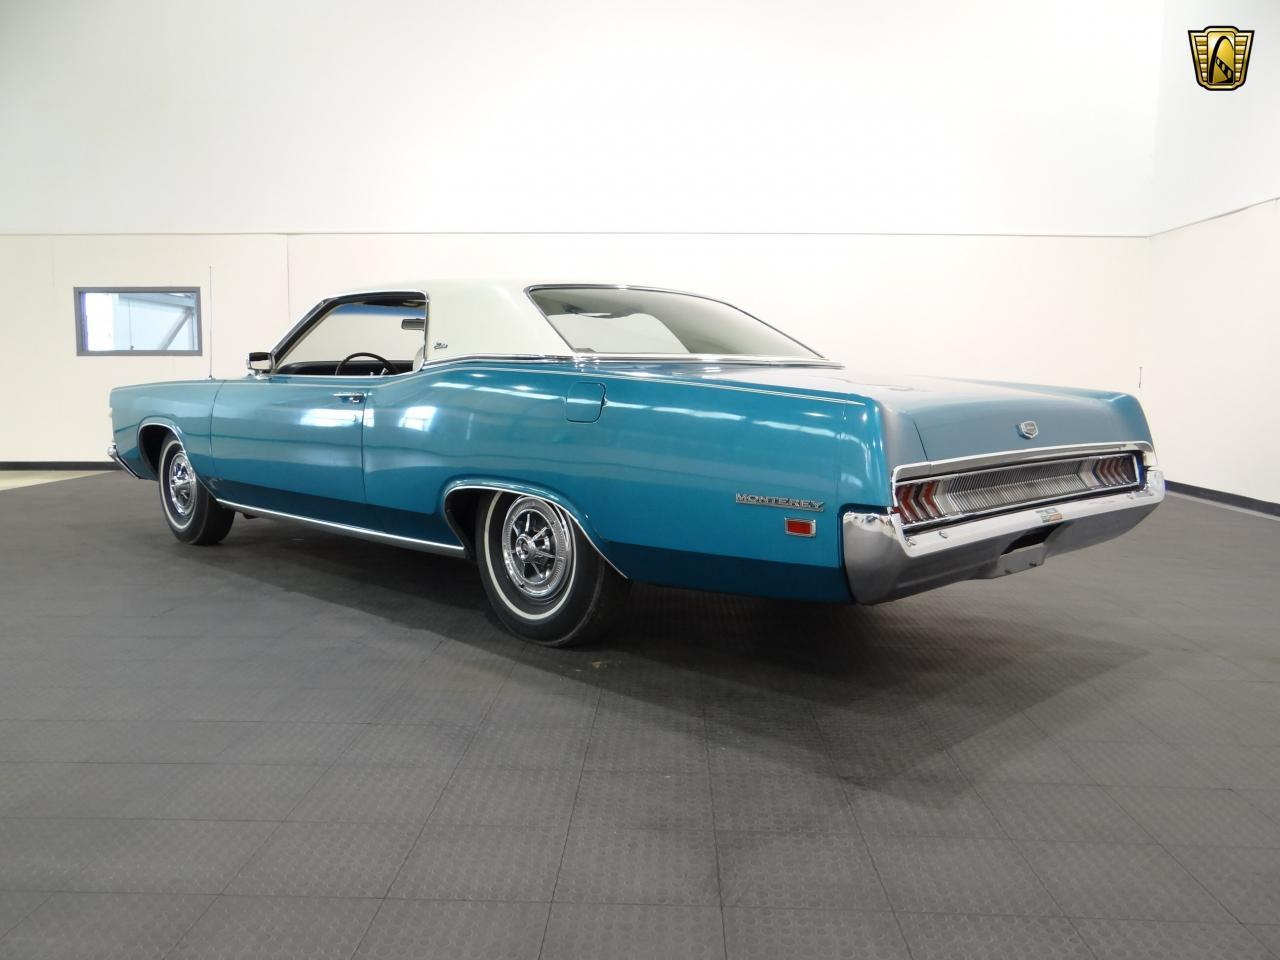 Large Picture of 1969 Mercury Monterey - $17,995.00 Offered by Gateway Classic Cars - Indianapolis - KECC